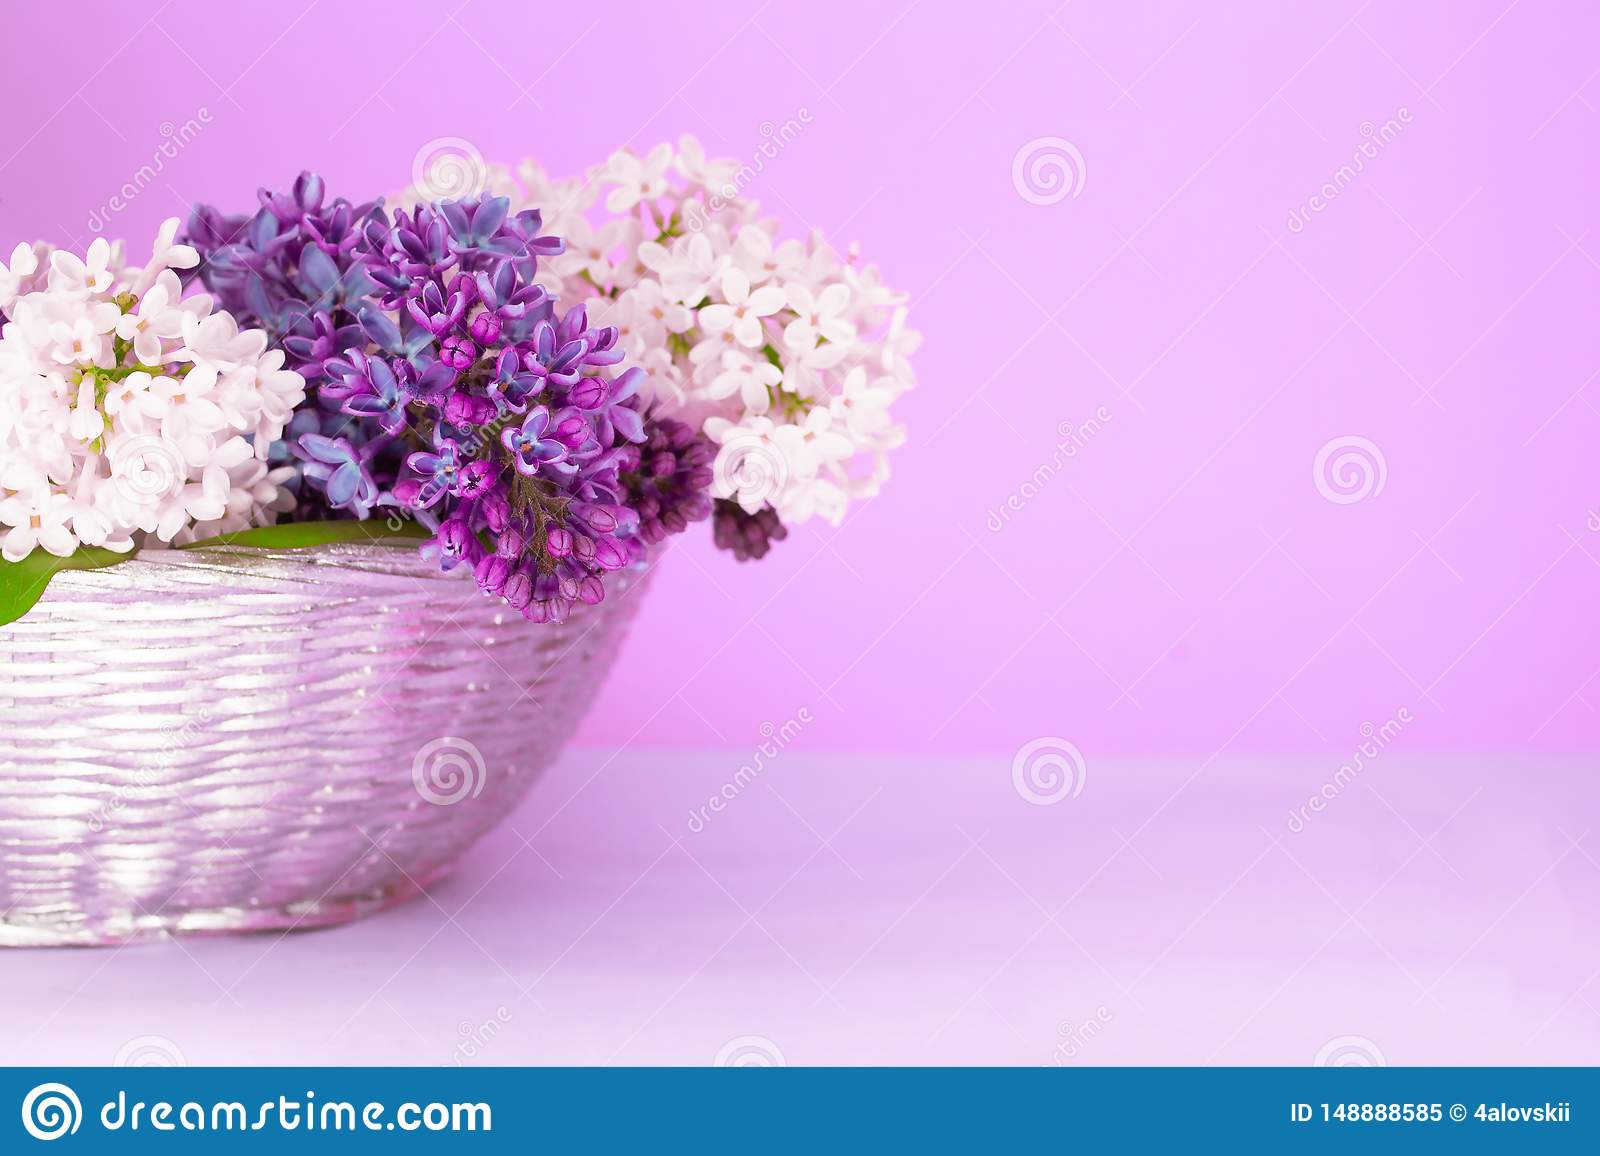 Lush multicolored bouquet of lilac flowers in a blurred purple background. Pastel greeting card concept. Copy space.